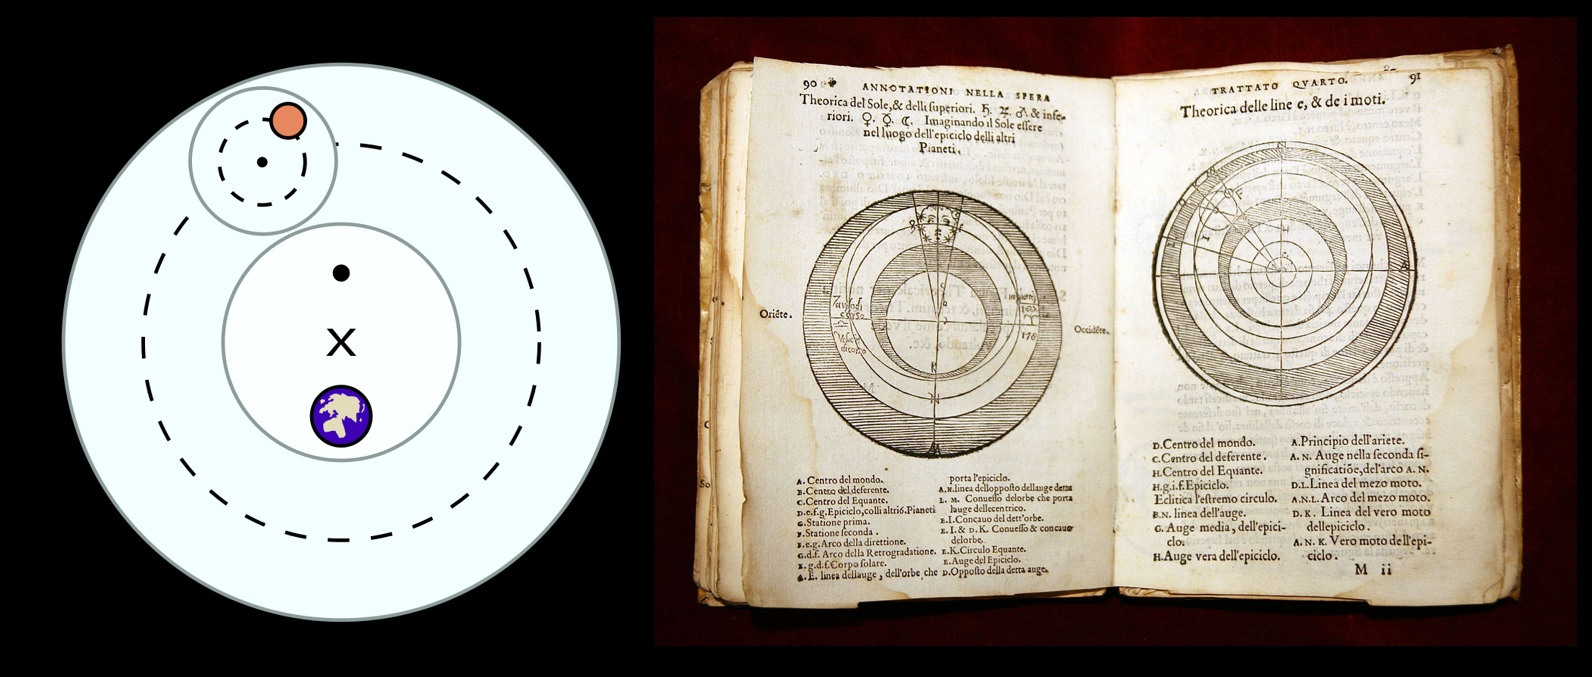 """Illustrations of the epicycle concept from the Ptolemaic model section of the Wikipedia entry for """"Geocentric Model"""""""